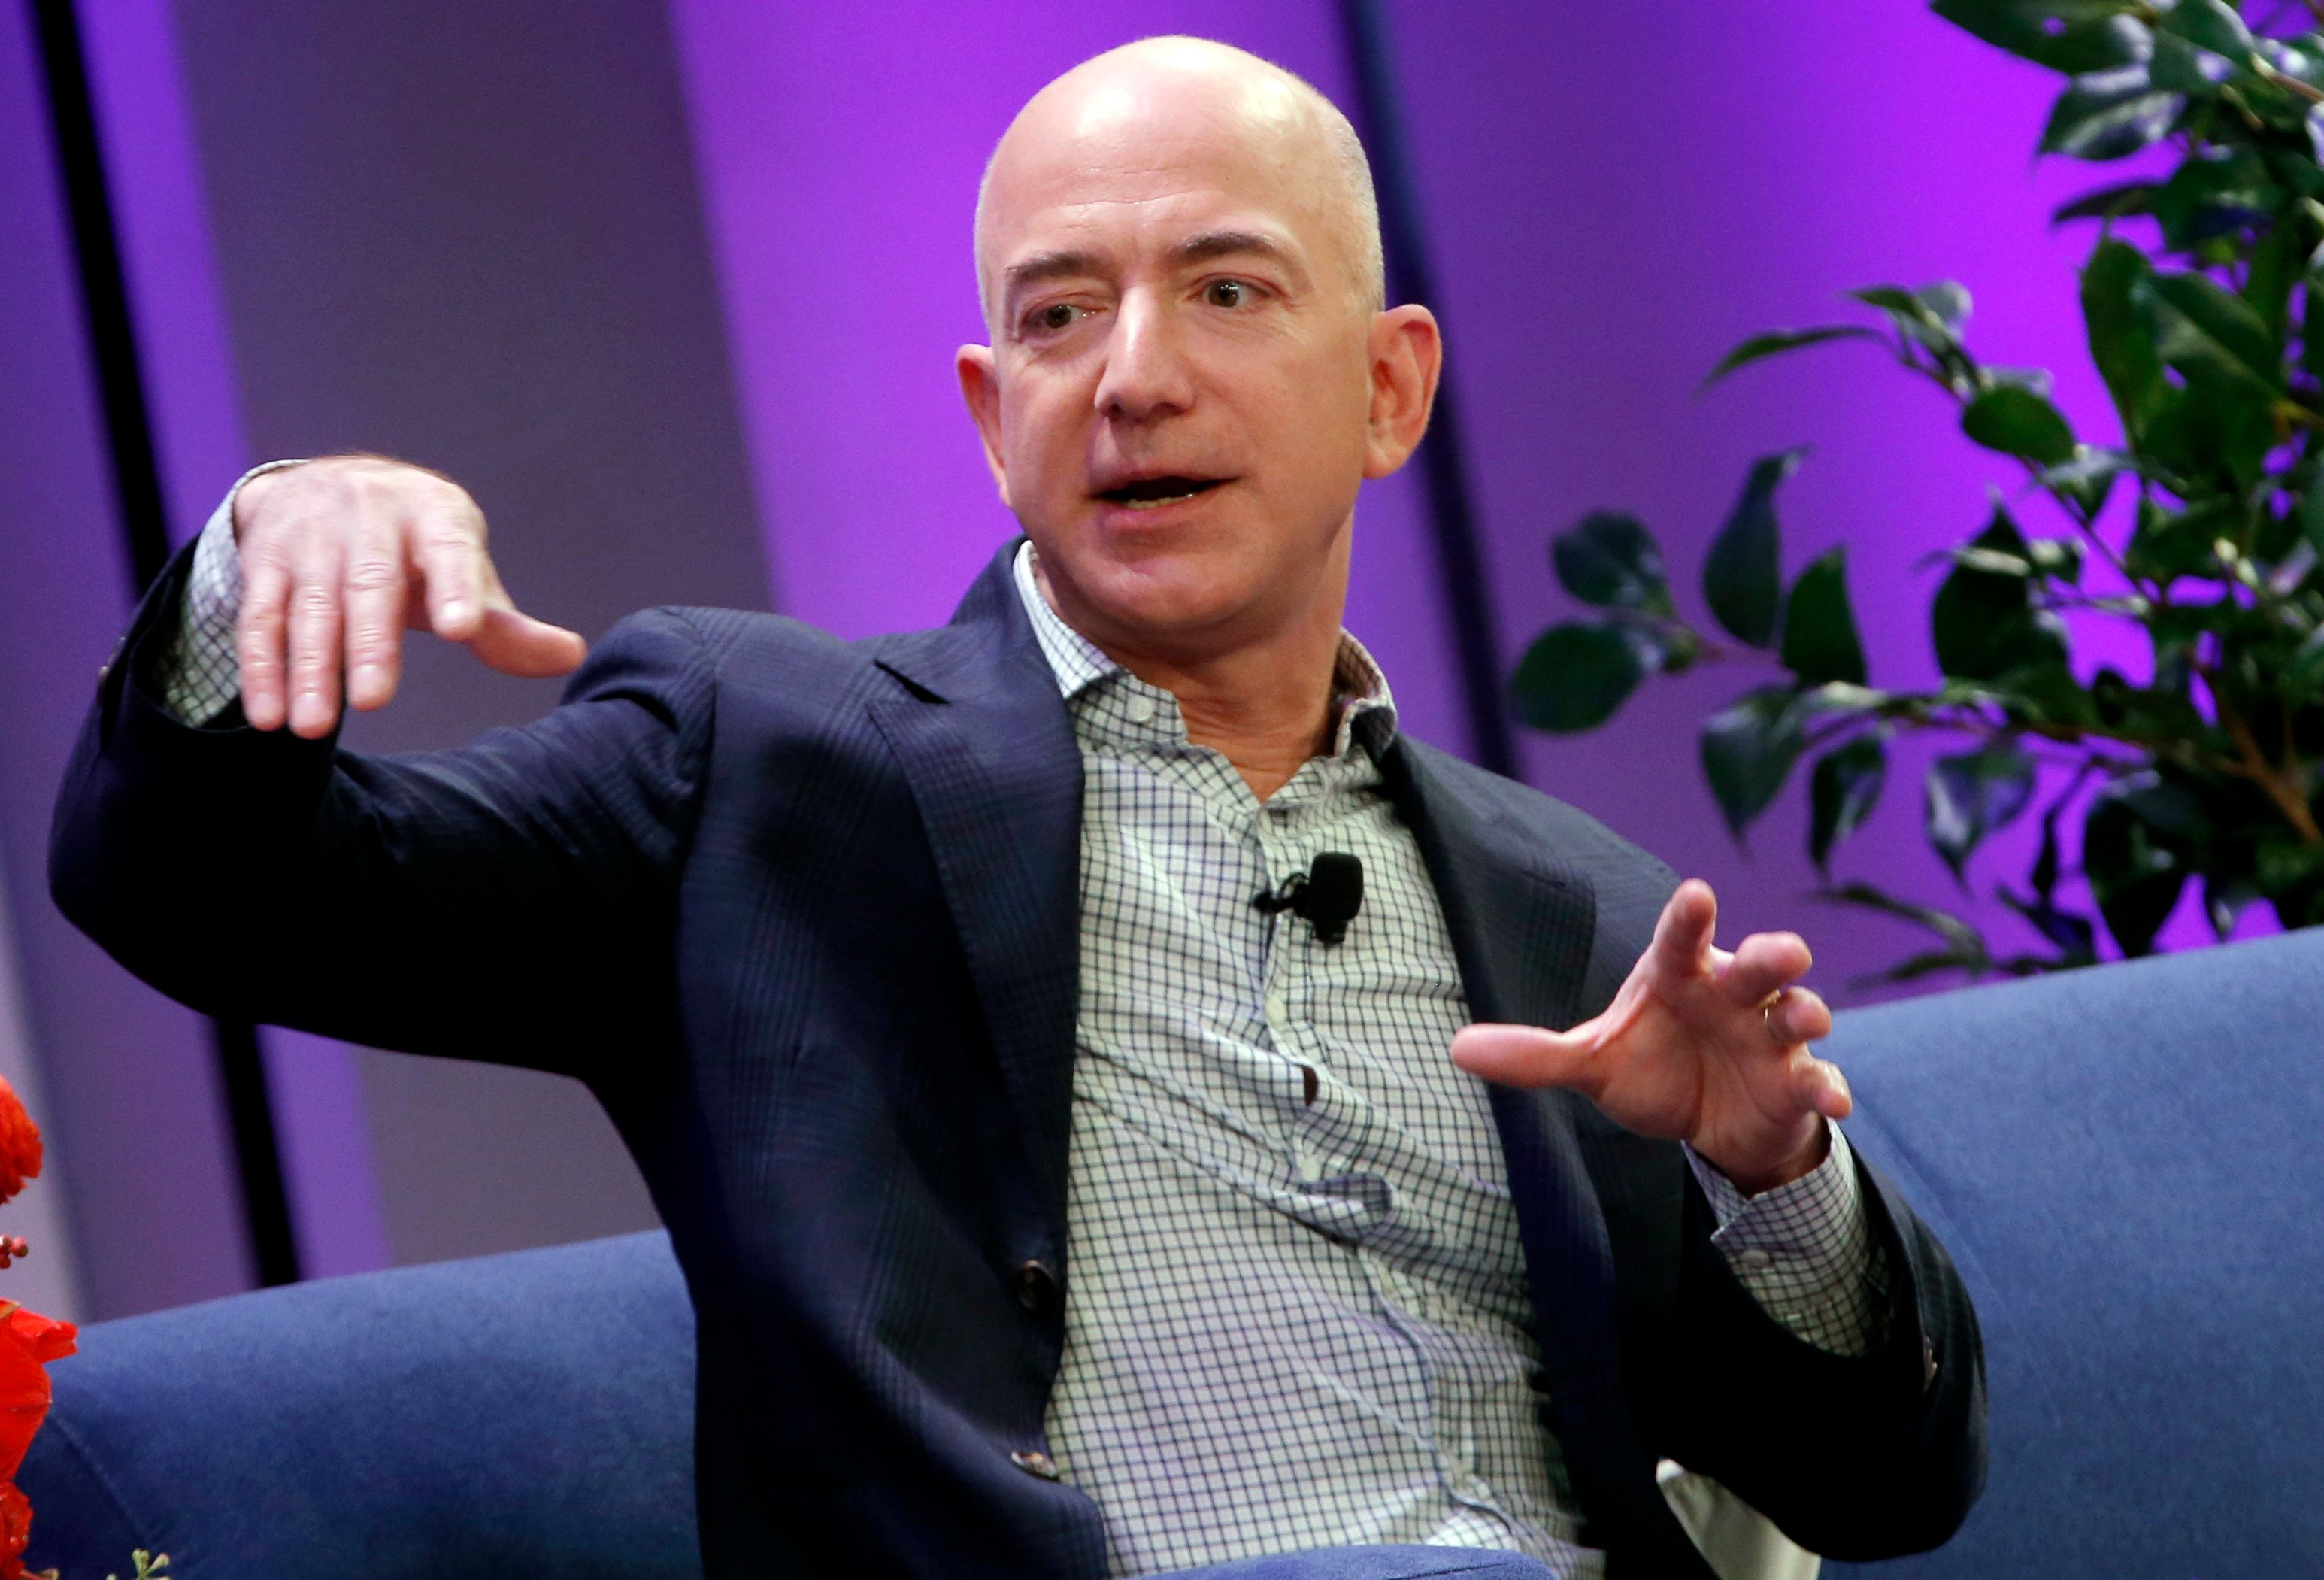 Amazon CEO Jeff Bezos recently surpassed Warren Buffet as the second-richest man in the world.